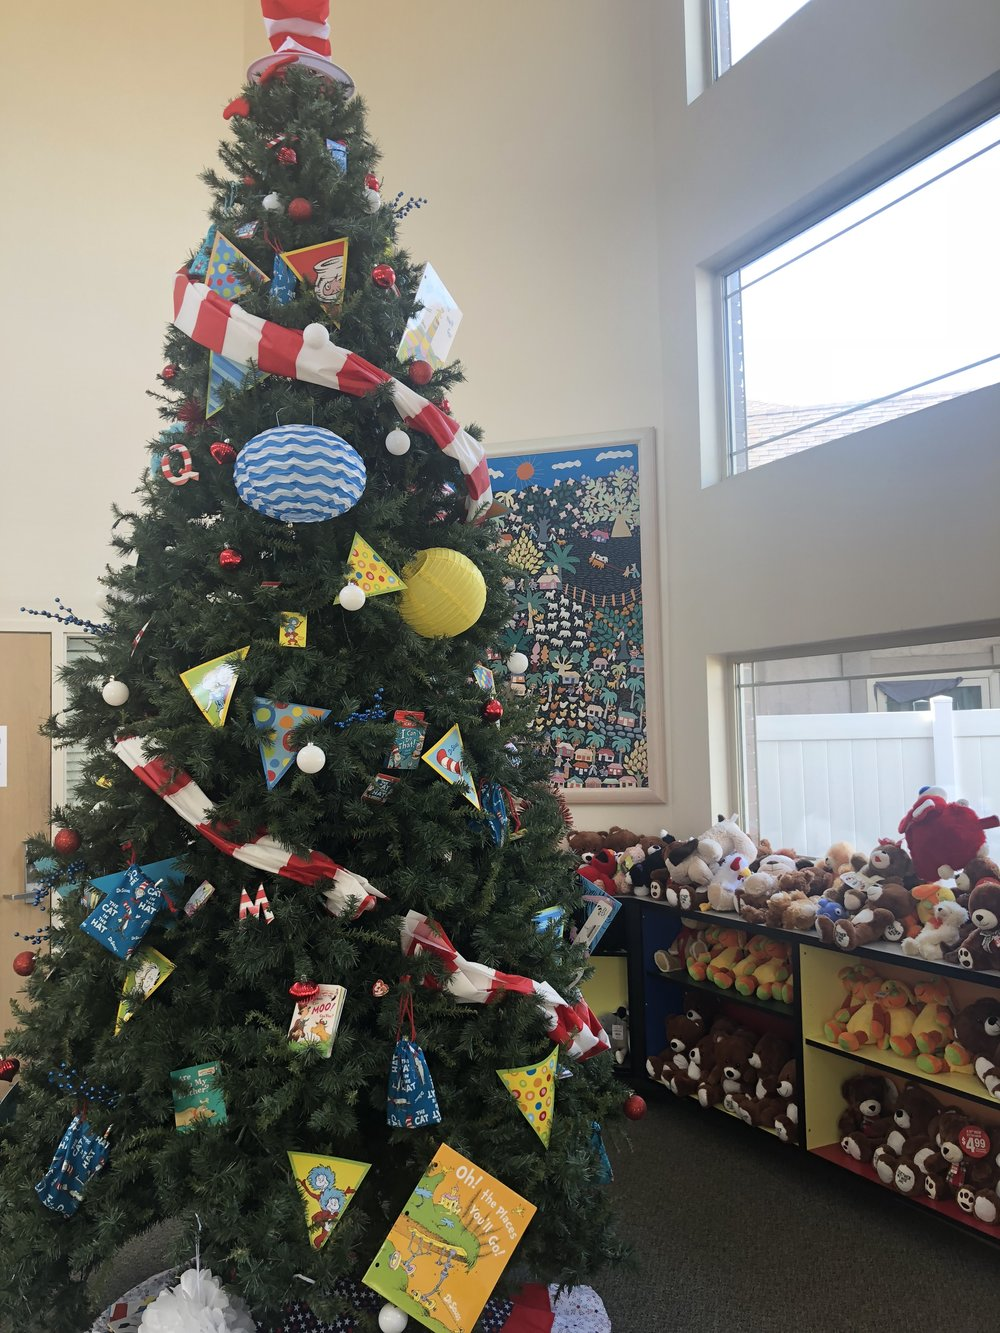 A Christmas Tree Adorned With Lights And Ornaments In A